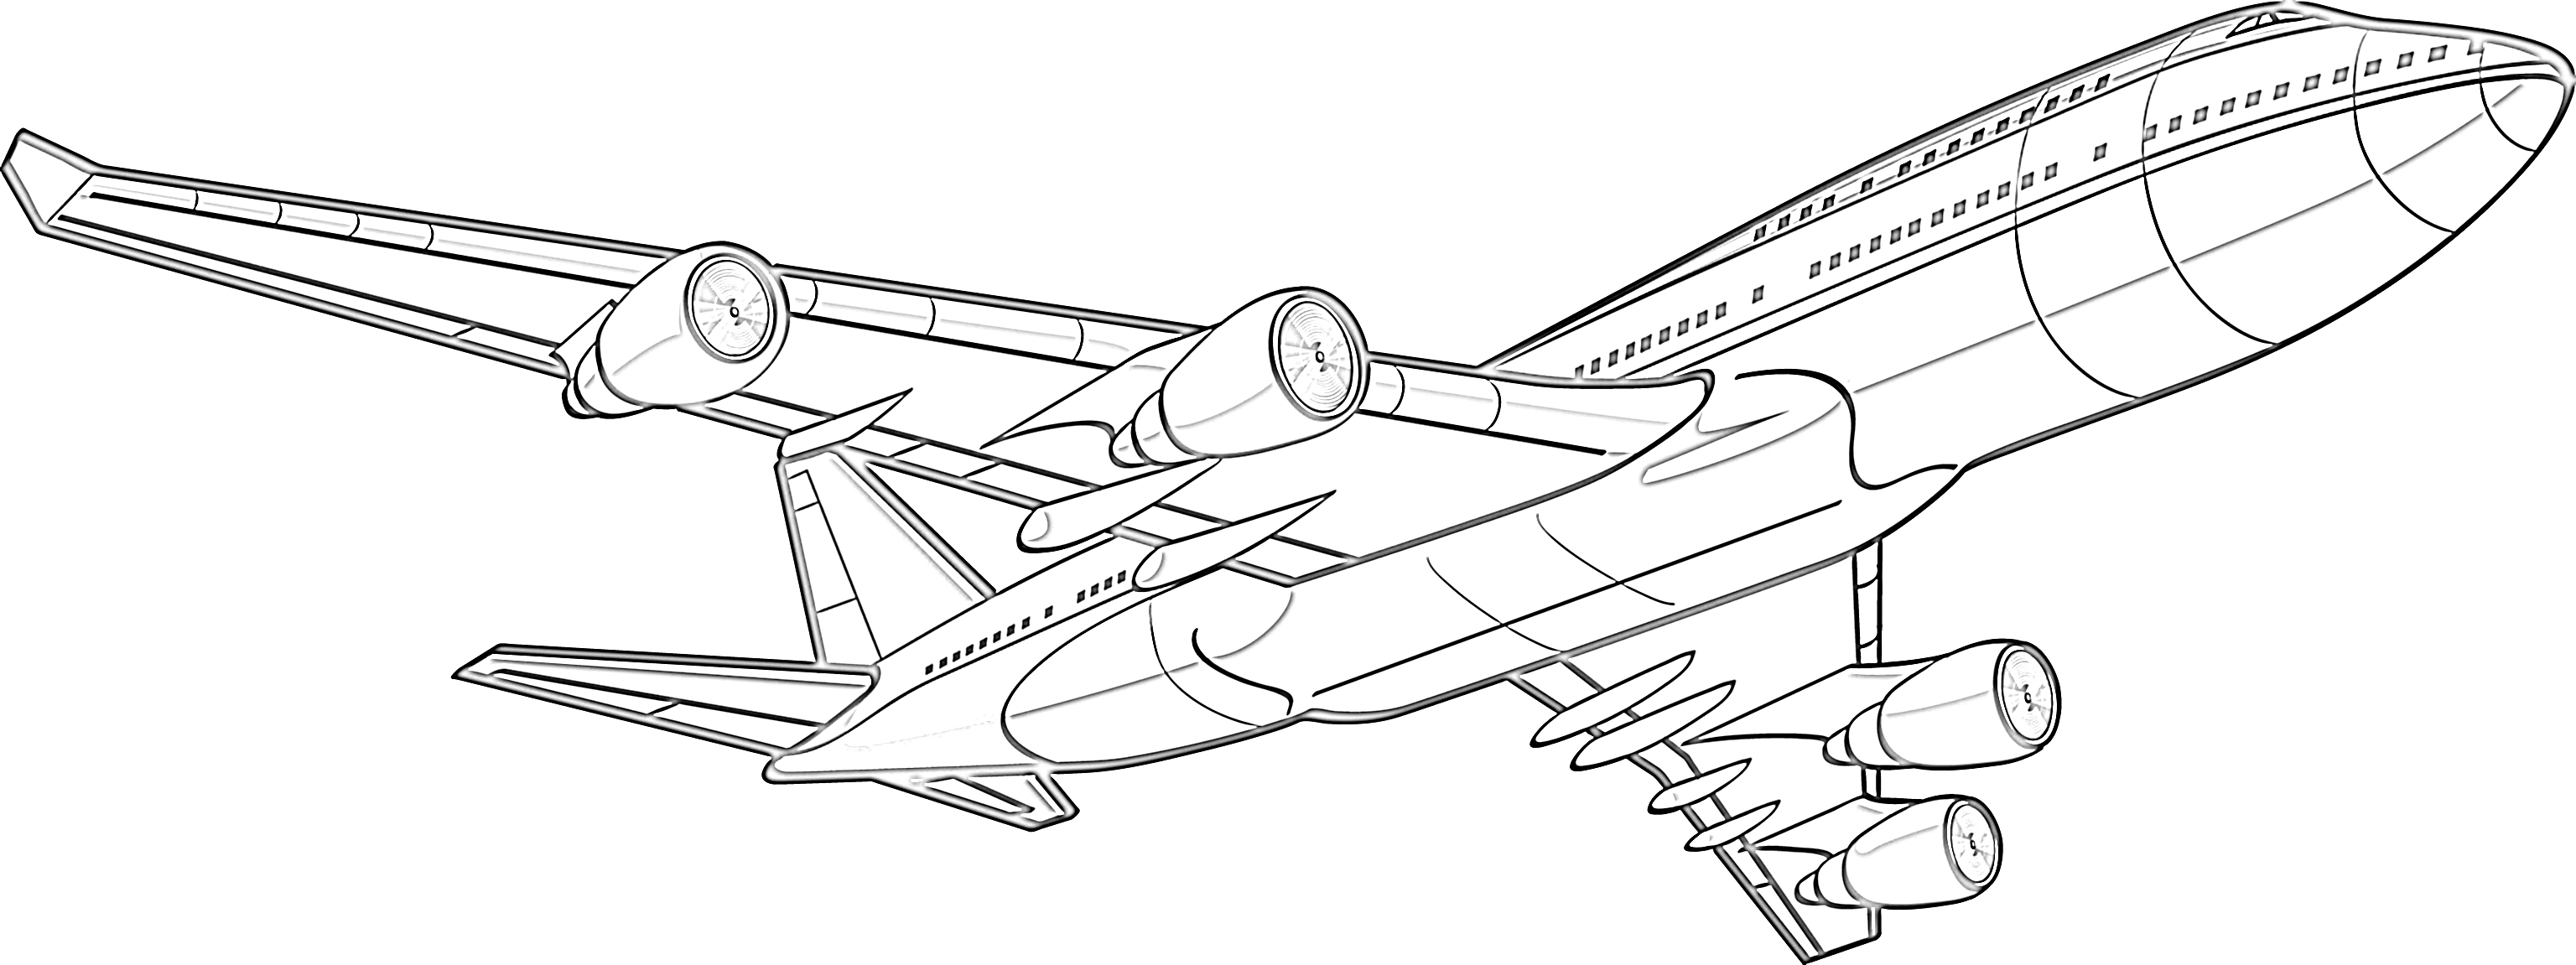 jet coloring images print download the sophisticated transportation of images jet coloring 1 1